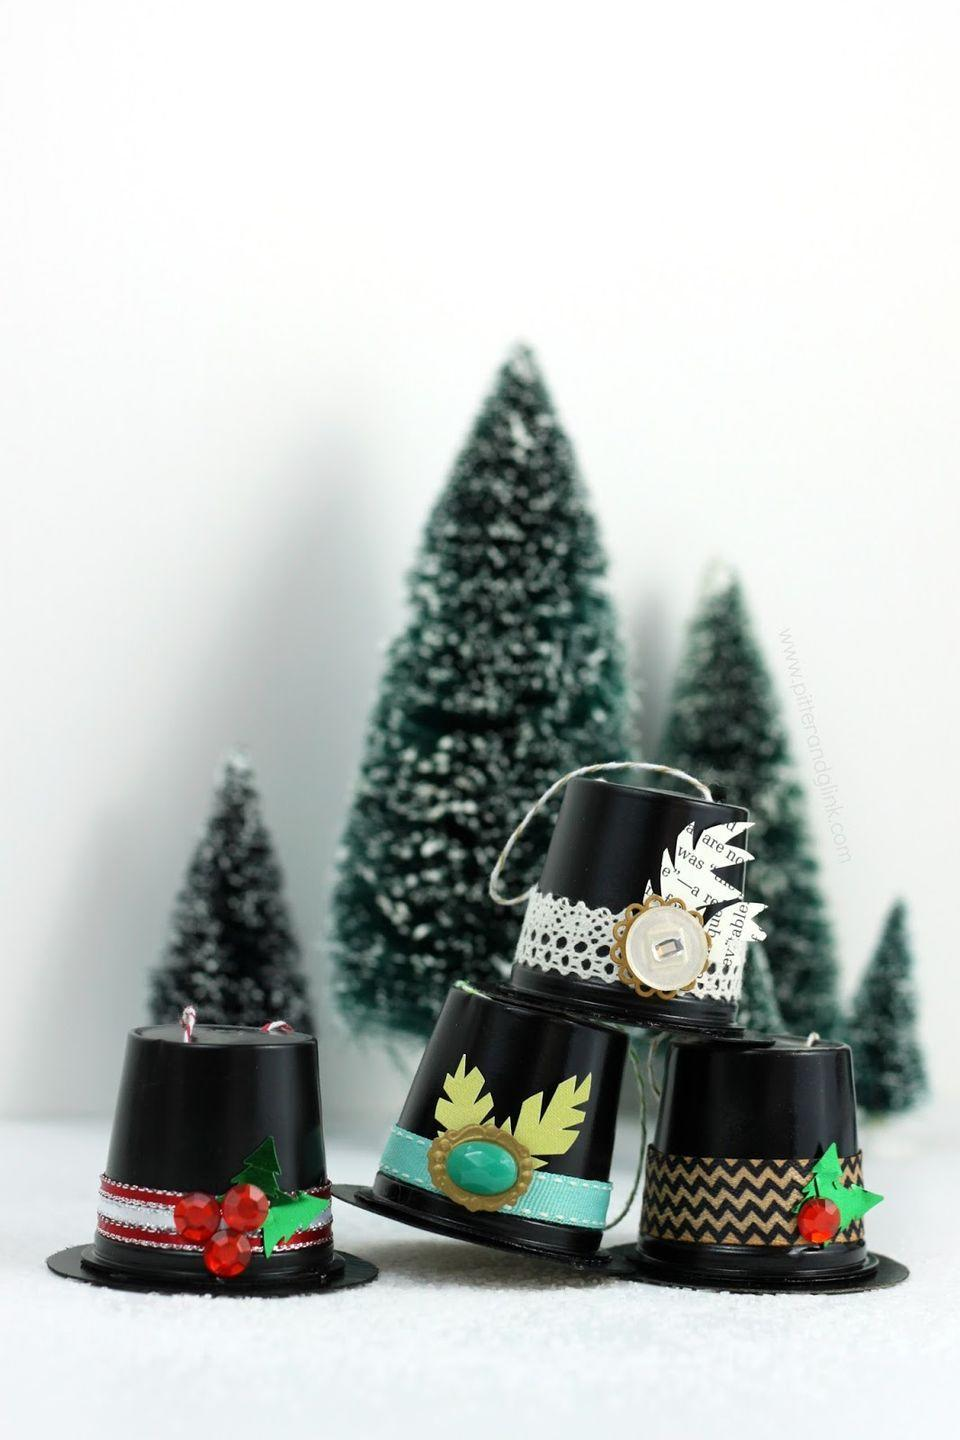 """<p>Turn K-cups into the cutest little to hats. </p><p><strong>Get the tutorial at <a href=""""http://www.pitterandglink.com/2014/12/recycled-k-cup-snowman-hat-ornaments.html"""" rel=""""nofollow noopener"""" target=""""_blank"""" data-ylk=""""slk:Pitter and Glink"""" class=""""link rapid-noclick-resp"""">Pitter and Glink</a>.</strong></p>"""